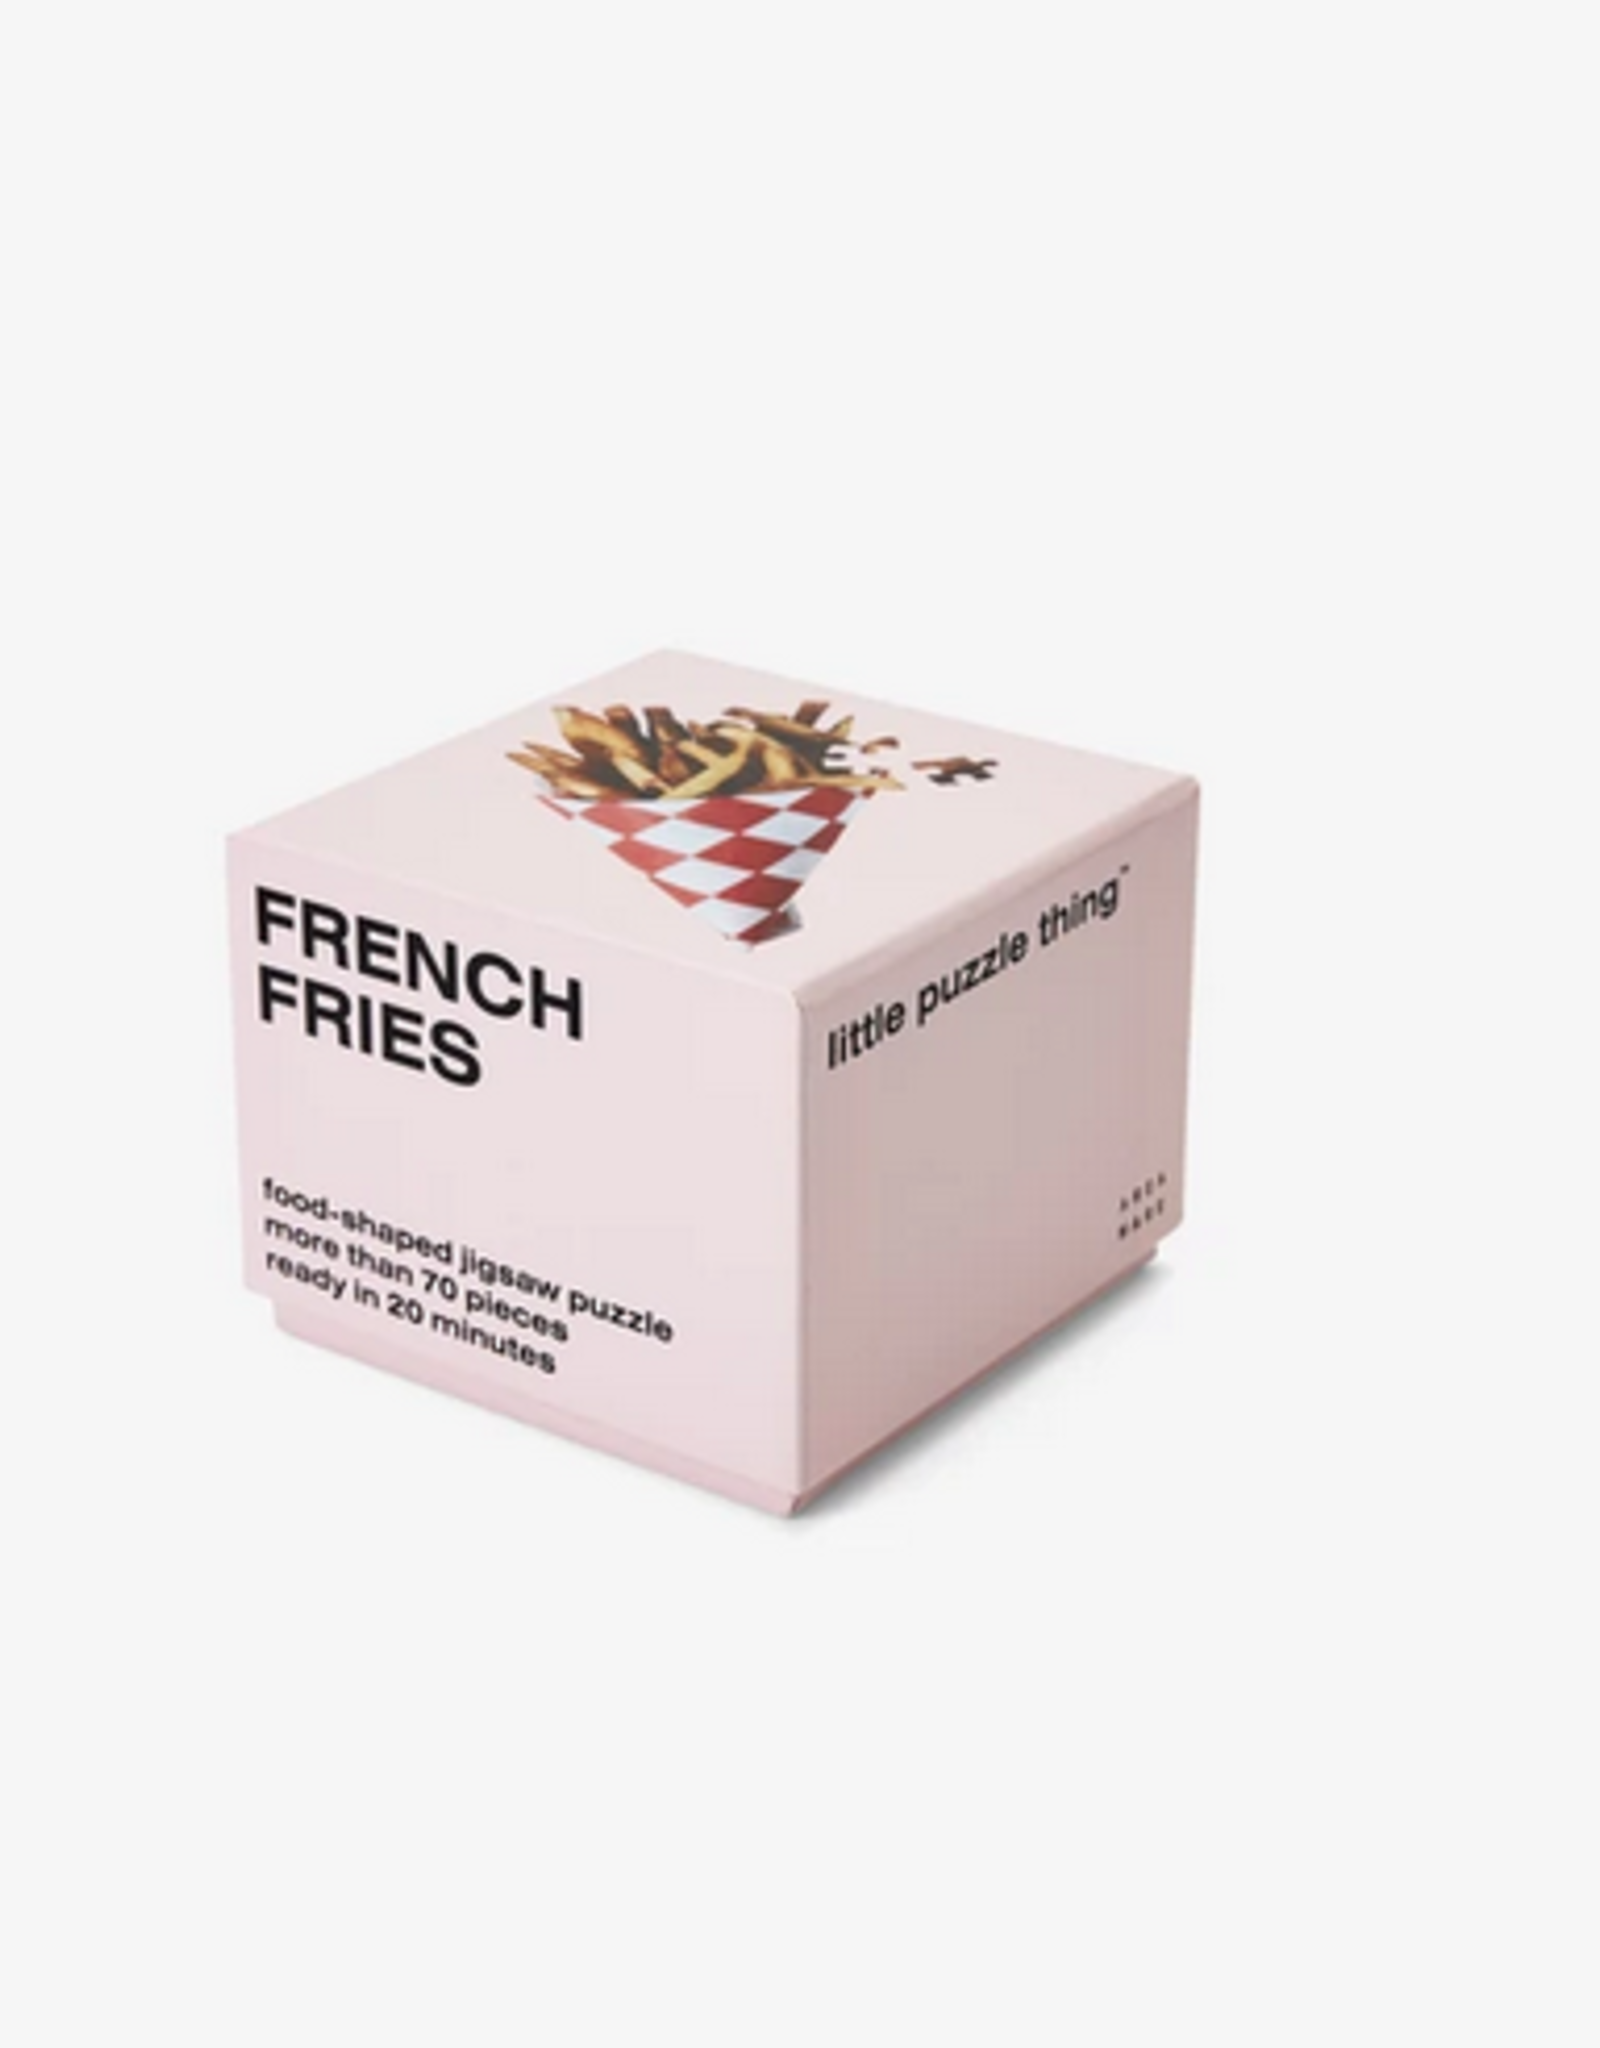 Areaware Little puzzle thing French fries